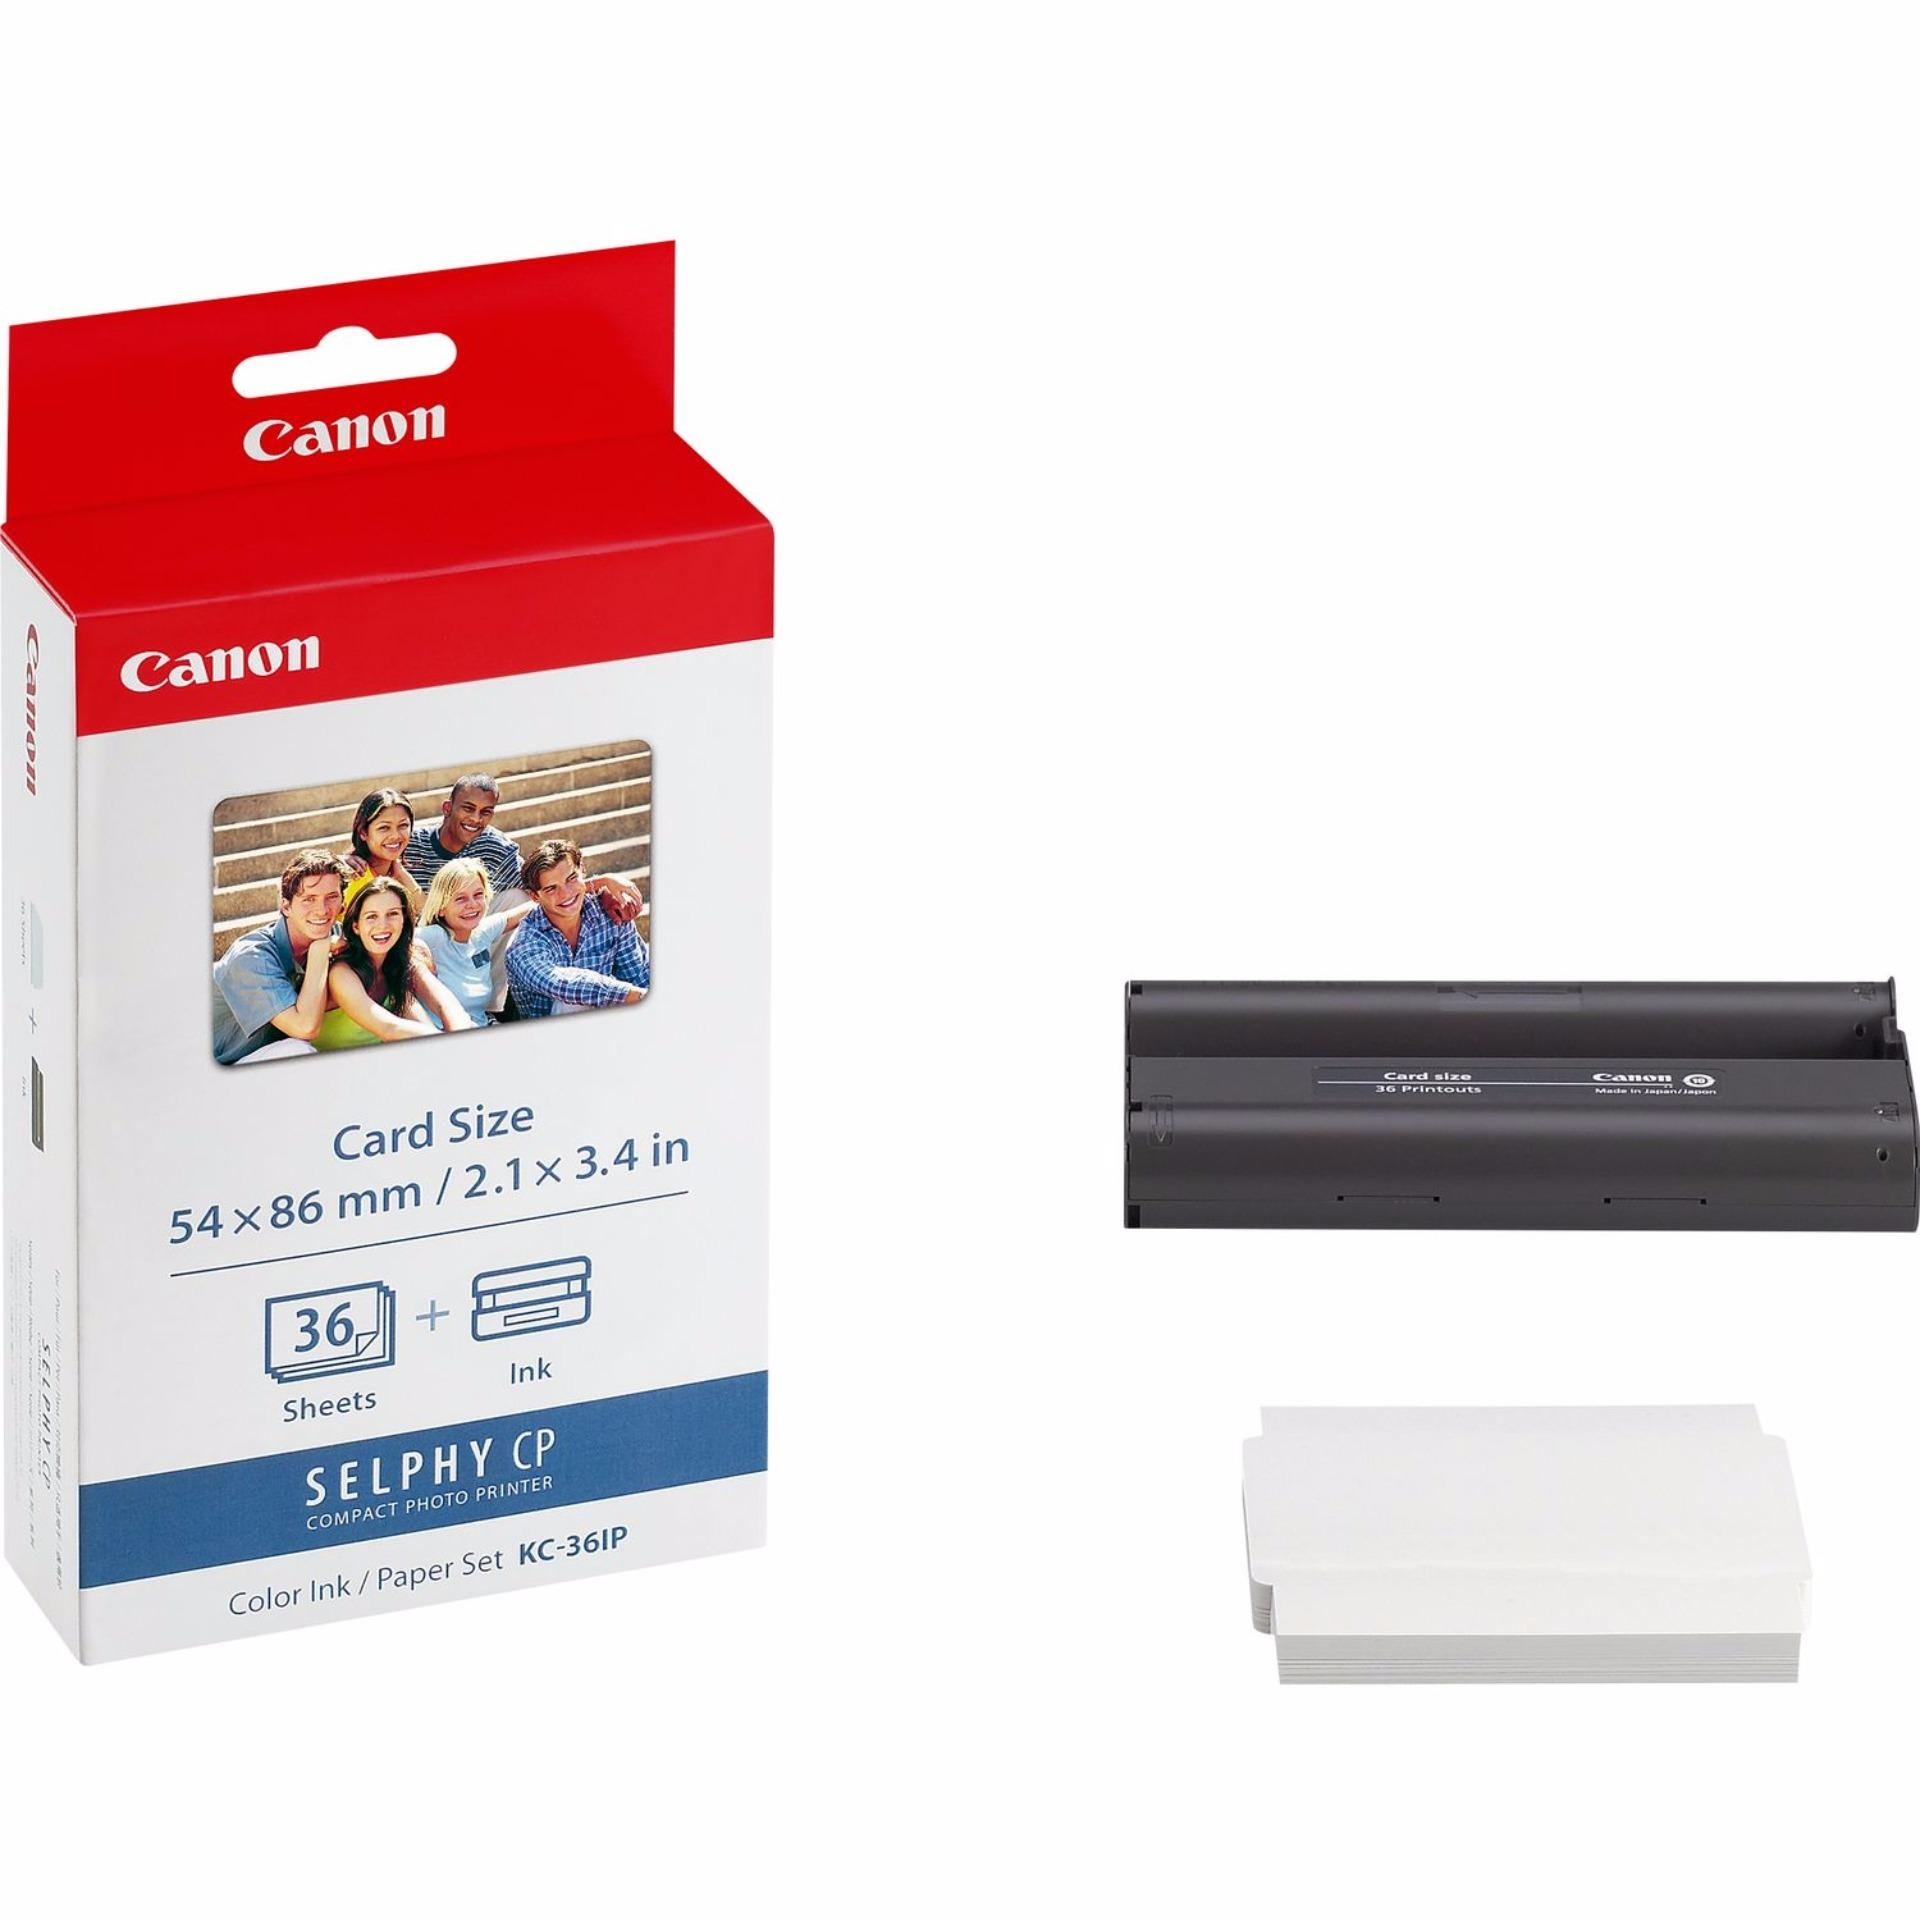 Canon KC-36IP Photo Ink and Paper Set KC36 KC36IP 36 Sheets Compatible with Selphy CP Series Printers 54 x 86mm credit card Size CP780 CP790 CP800 CP810 CP820 CP900 CP910 CP1000 CP1200 CP1300 CP1400 Requires PCC-CP400 PCCCP40 PCC CP400